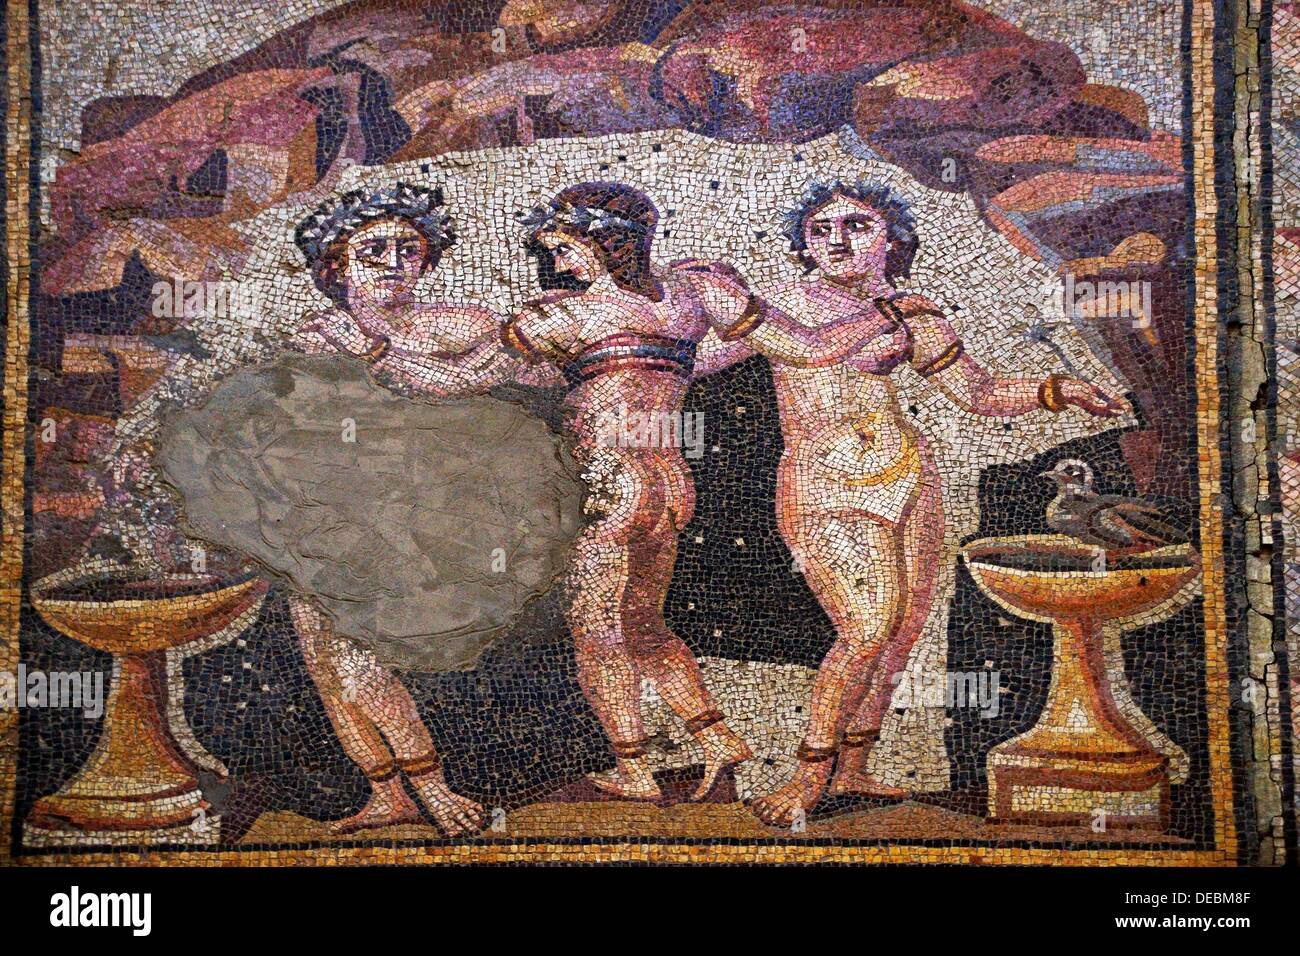 Syria, Hauran, Museum of Shahba: detail of the mosaic of the Three Graces, 3rd Century - Stock Image